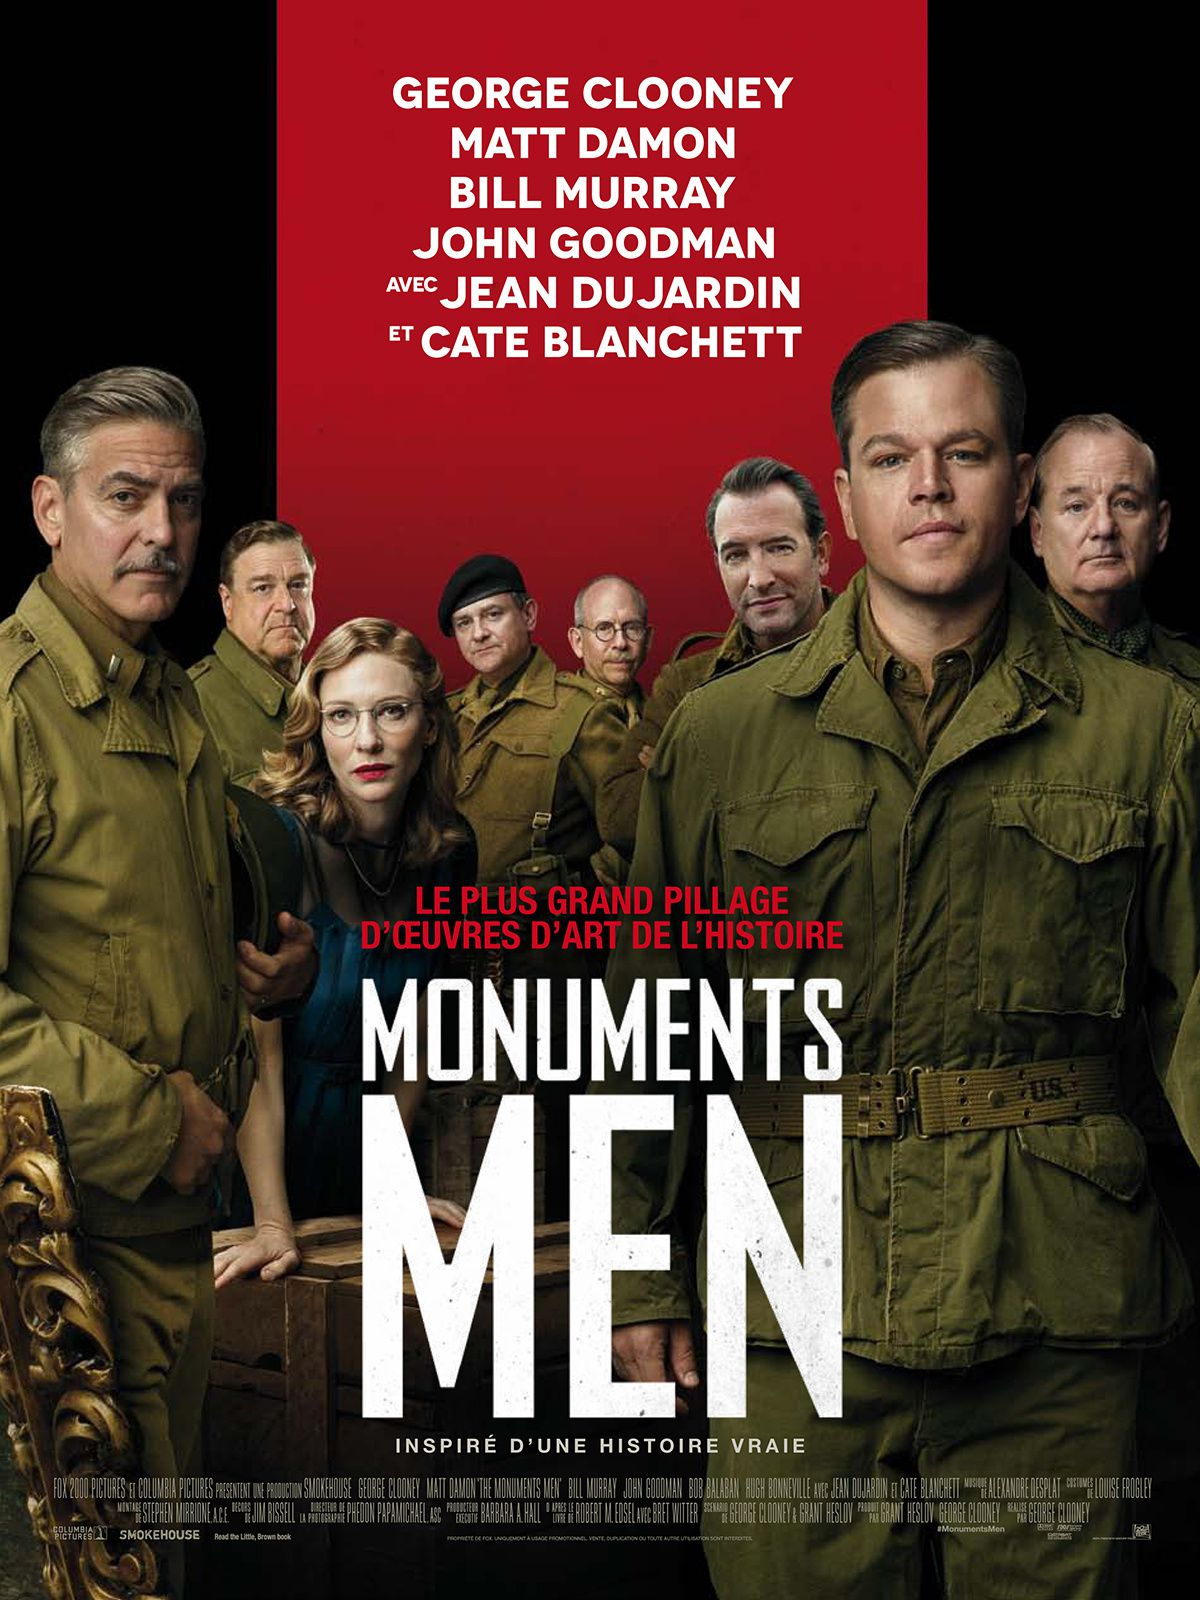 Monuments Men - George Clooney